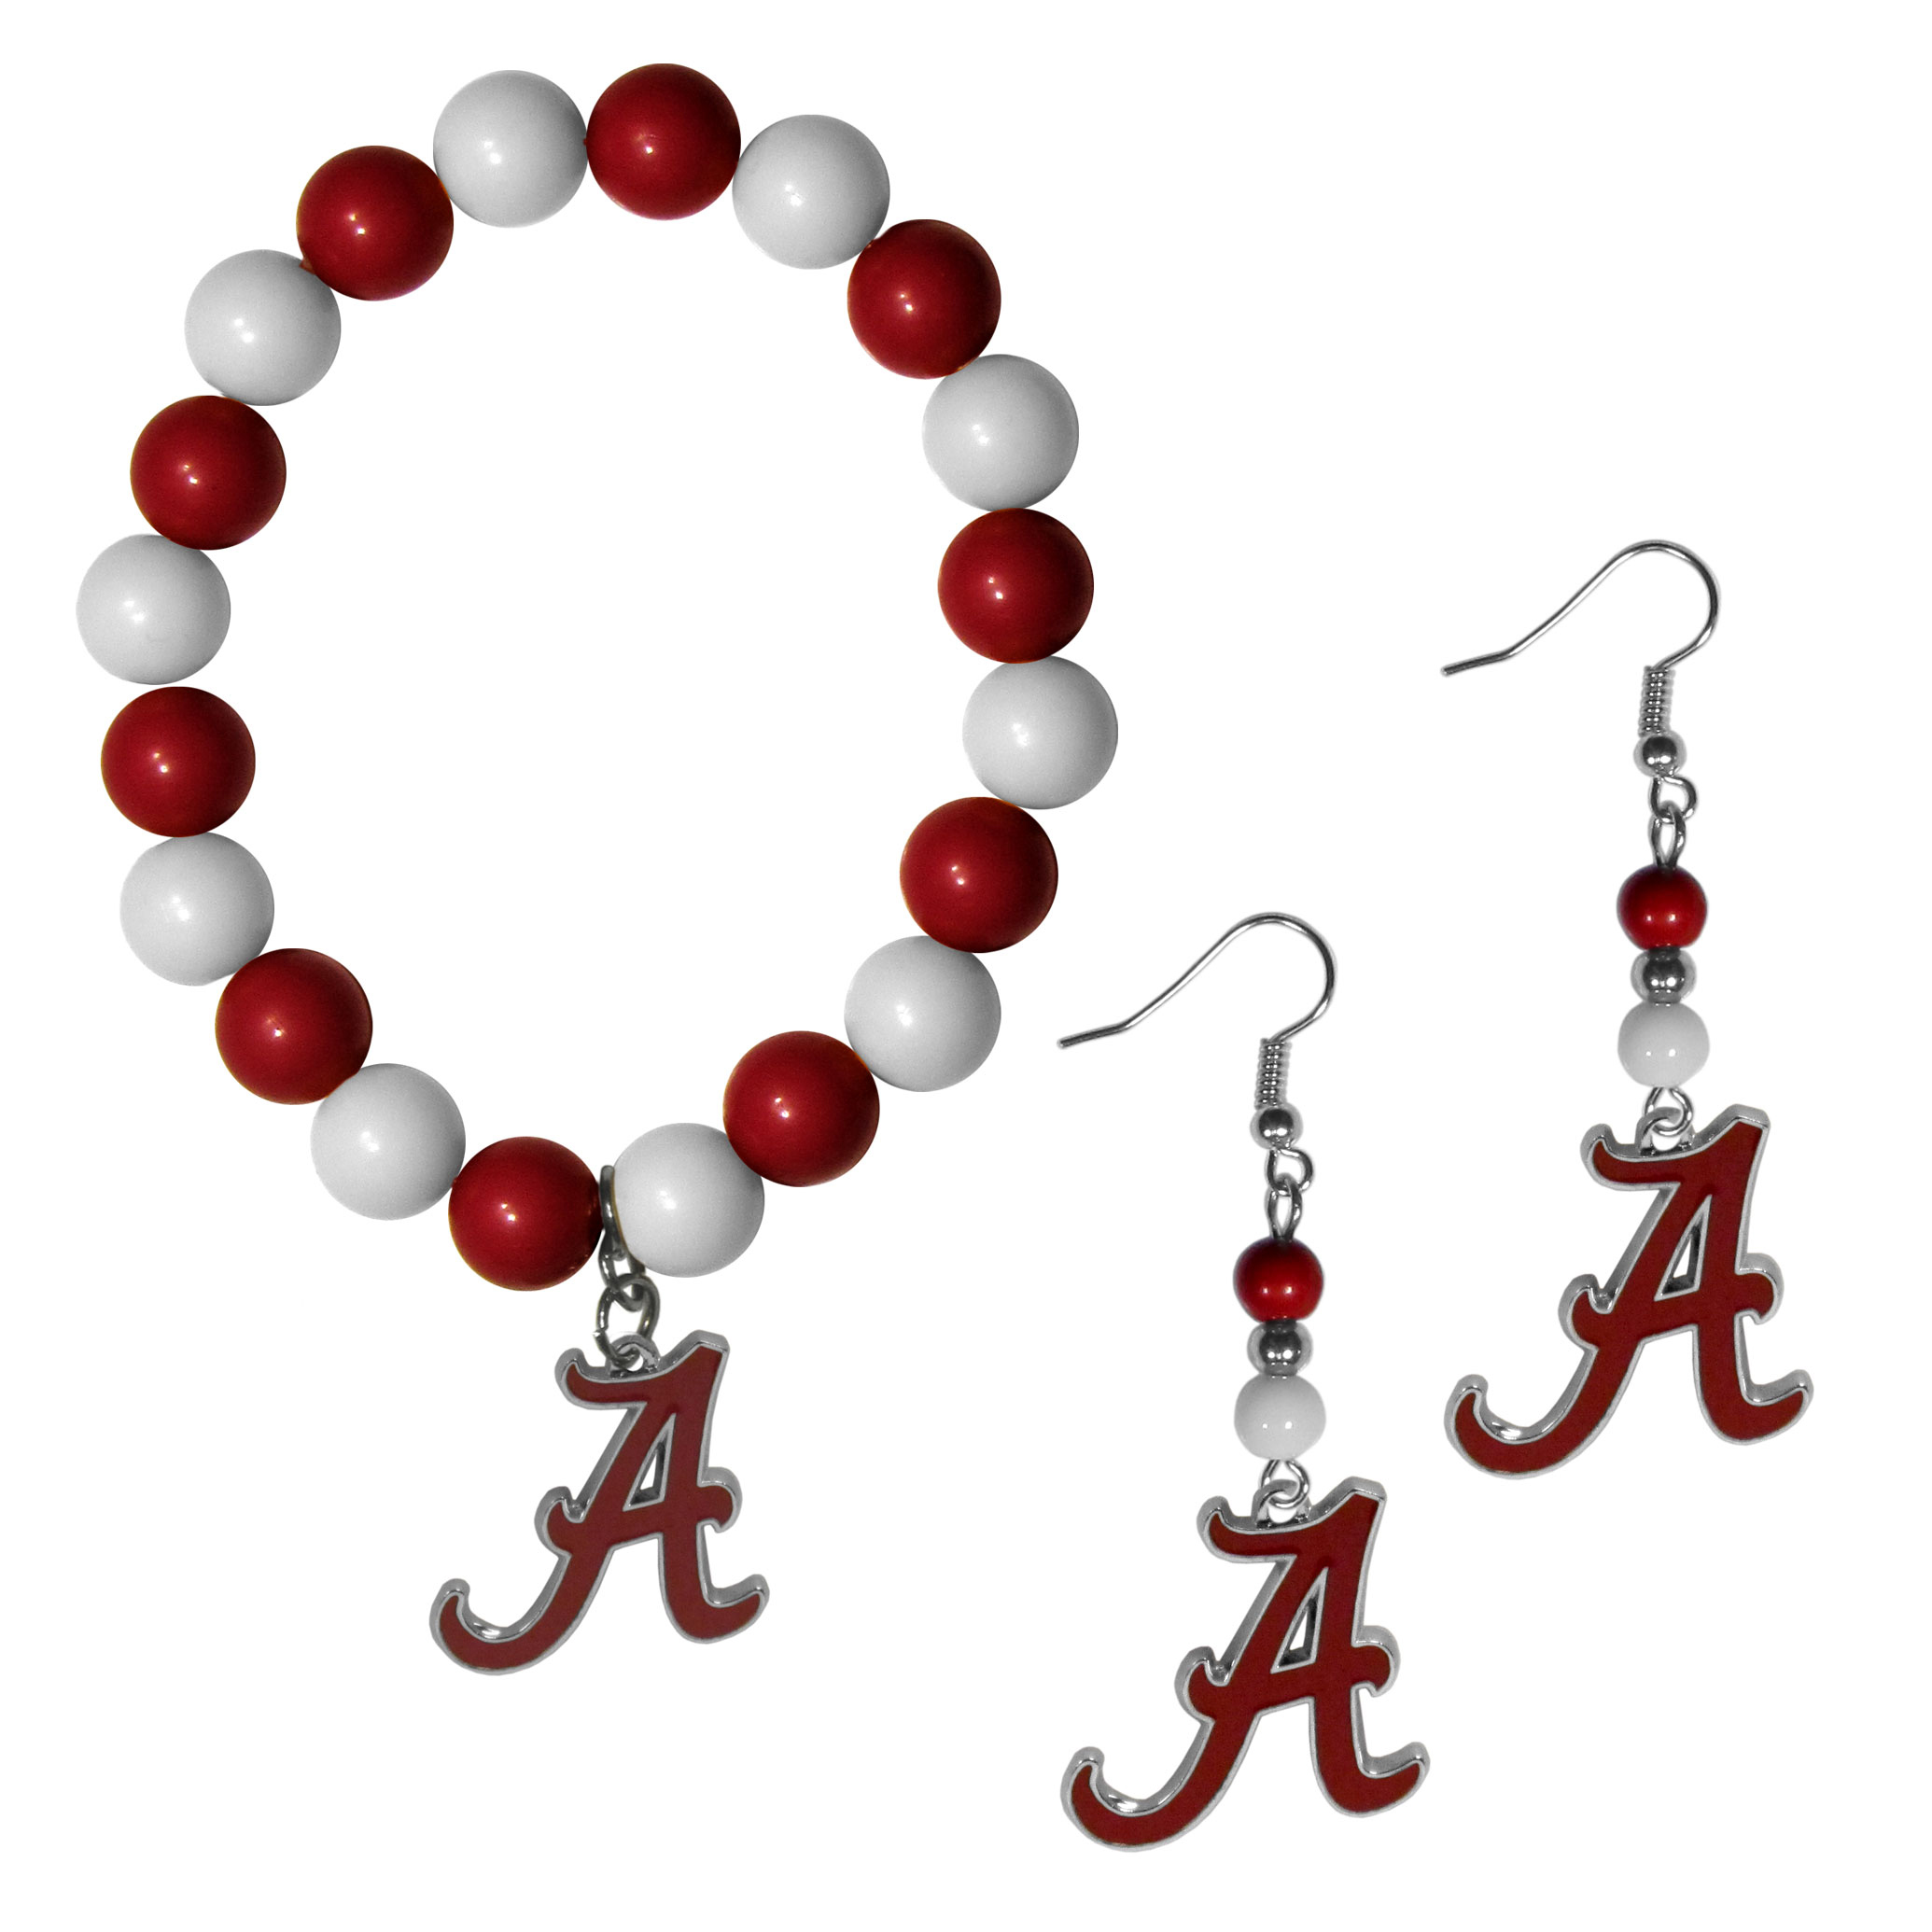 Alabama Crimson Tide Fan Bead Earrings and Bracelet Set - This fun and colorful Alabama Crimson Tide fan bead jewelry set is fun and casual with eye-catching beads in bright team colors. The fashionable dangle earrings feature a team colored beads that drop down to a carved and enameled charm. The stretch bracelet has larger matching beads that make a striking statement and have a matching team charm. These sassy yet sporty jewelry pieces make a perfect gift for any female fan. Spice up your game-day outfit with these fun colorful earrings and bracelet that are also cute enough for any day.